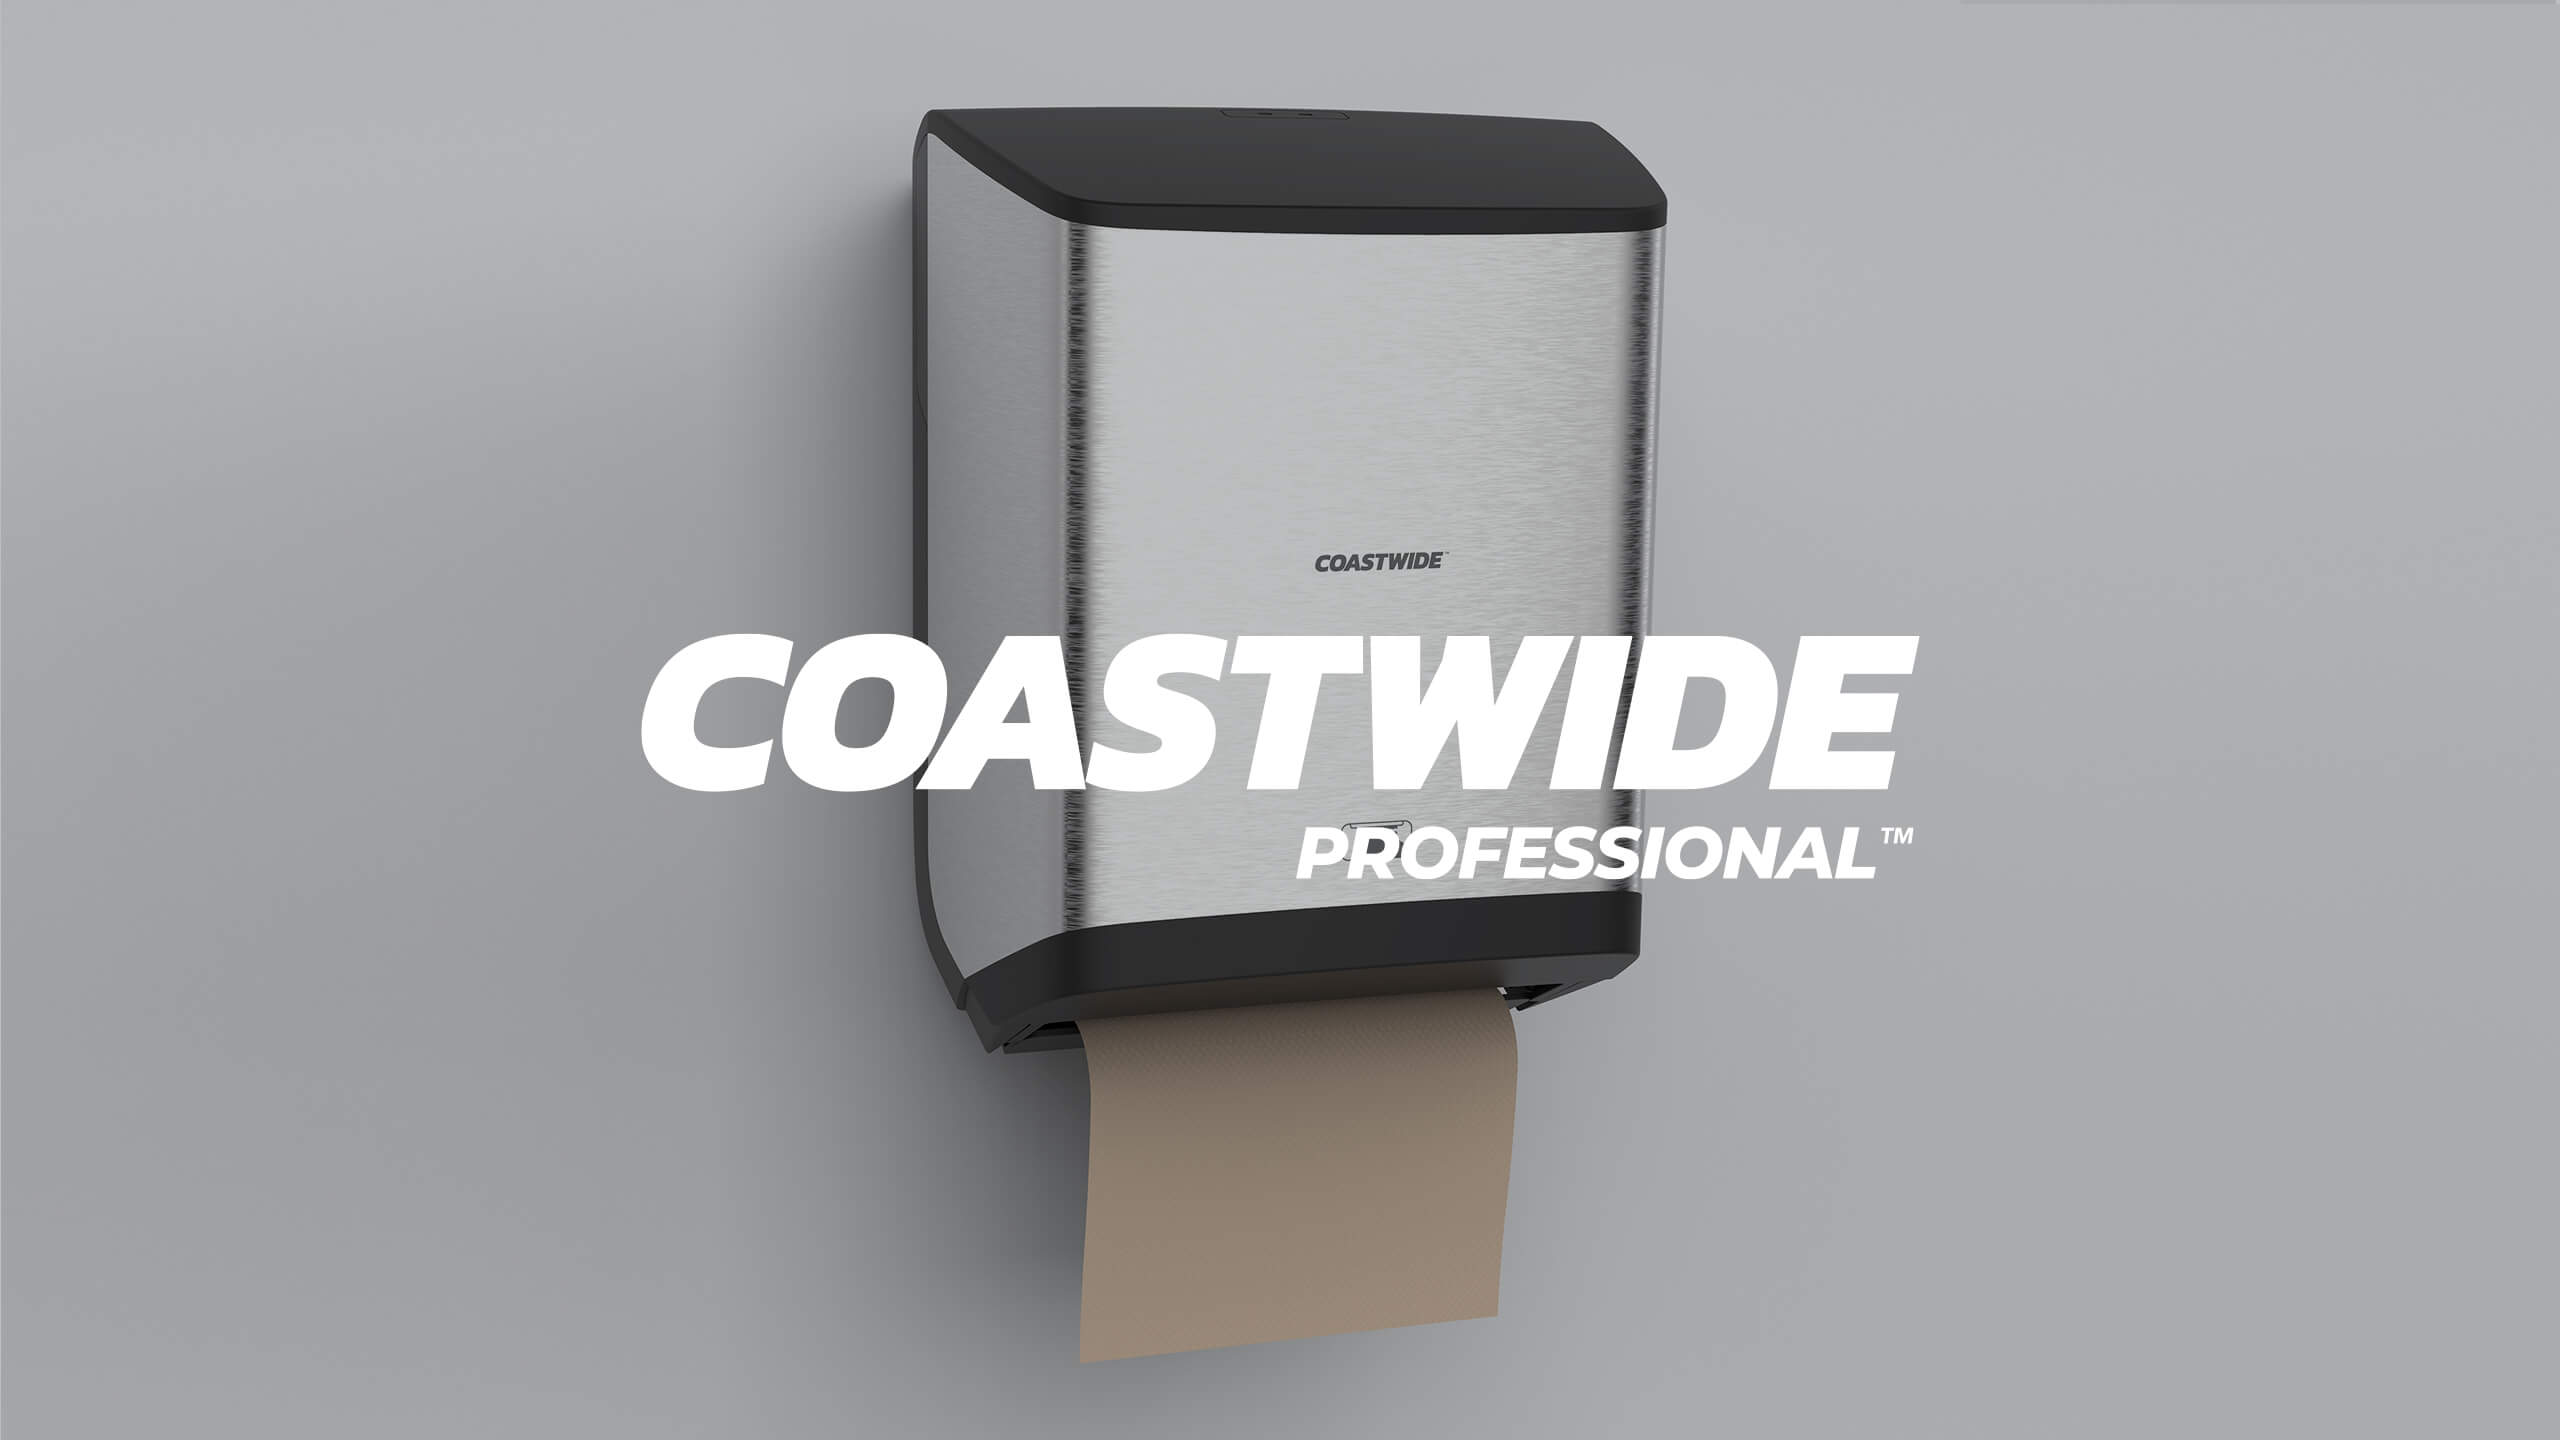 Coastwide Professional logo on top of a 3D CAD Render of Paper Towel Machine by Sprout Studios